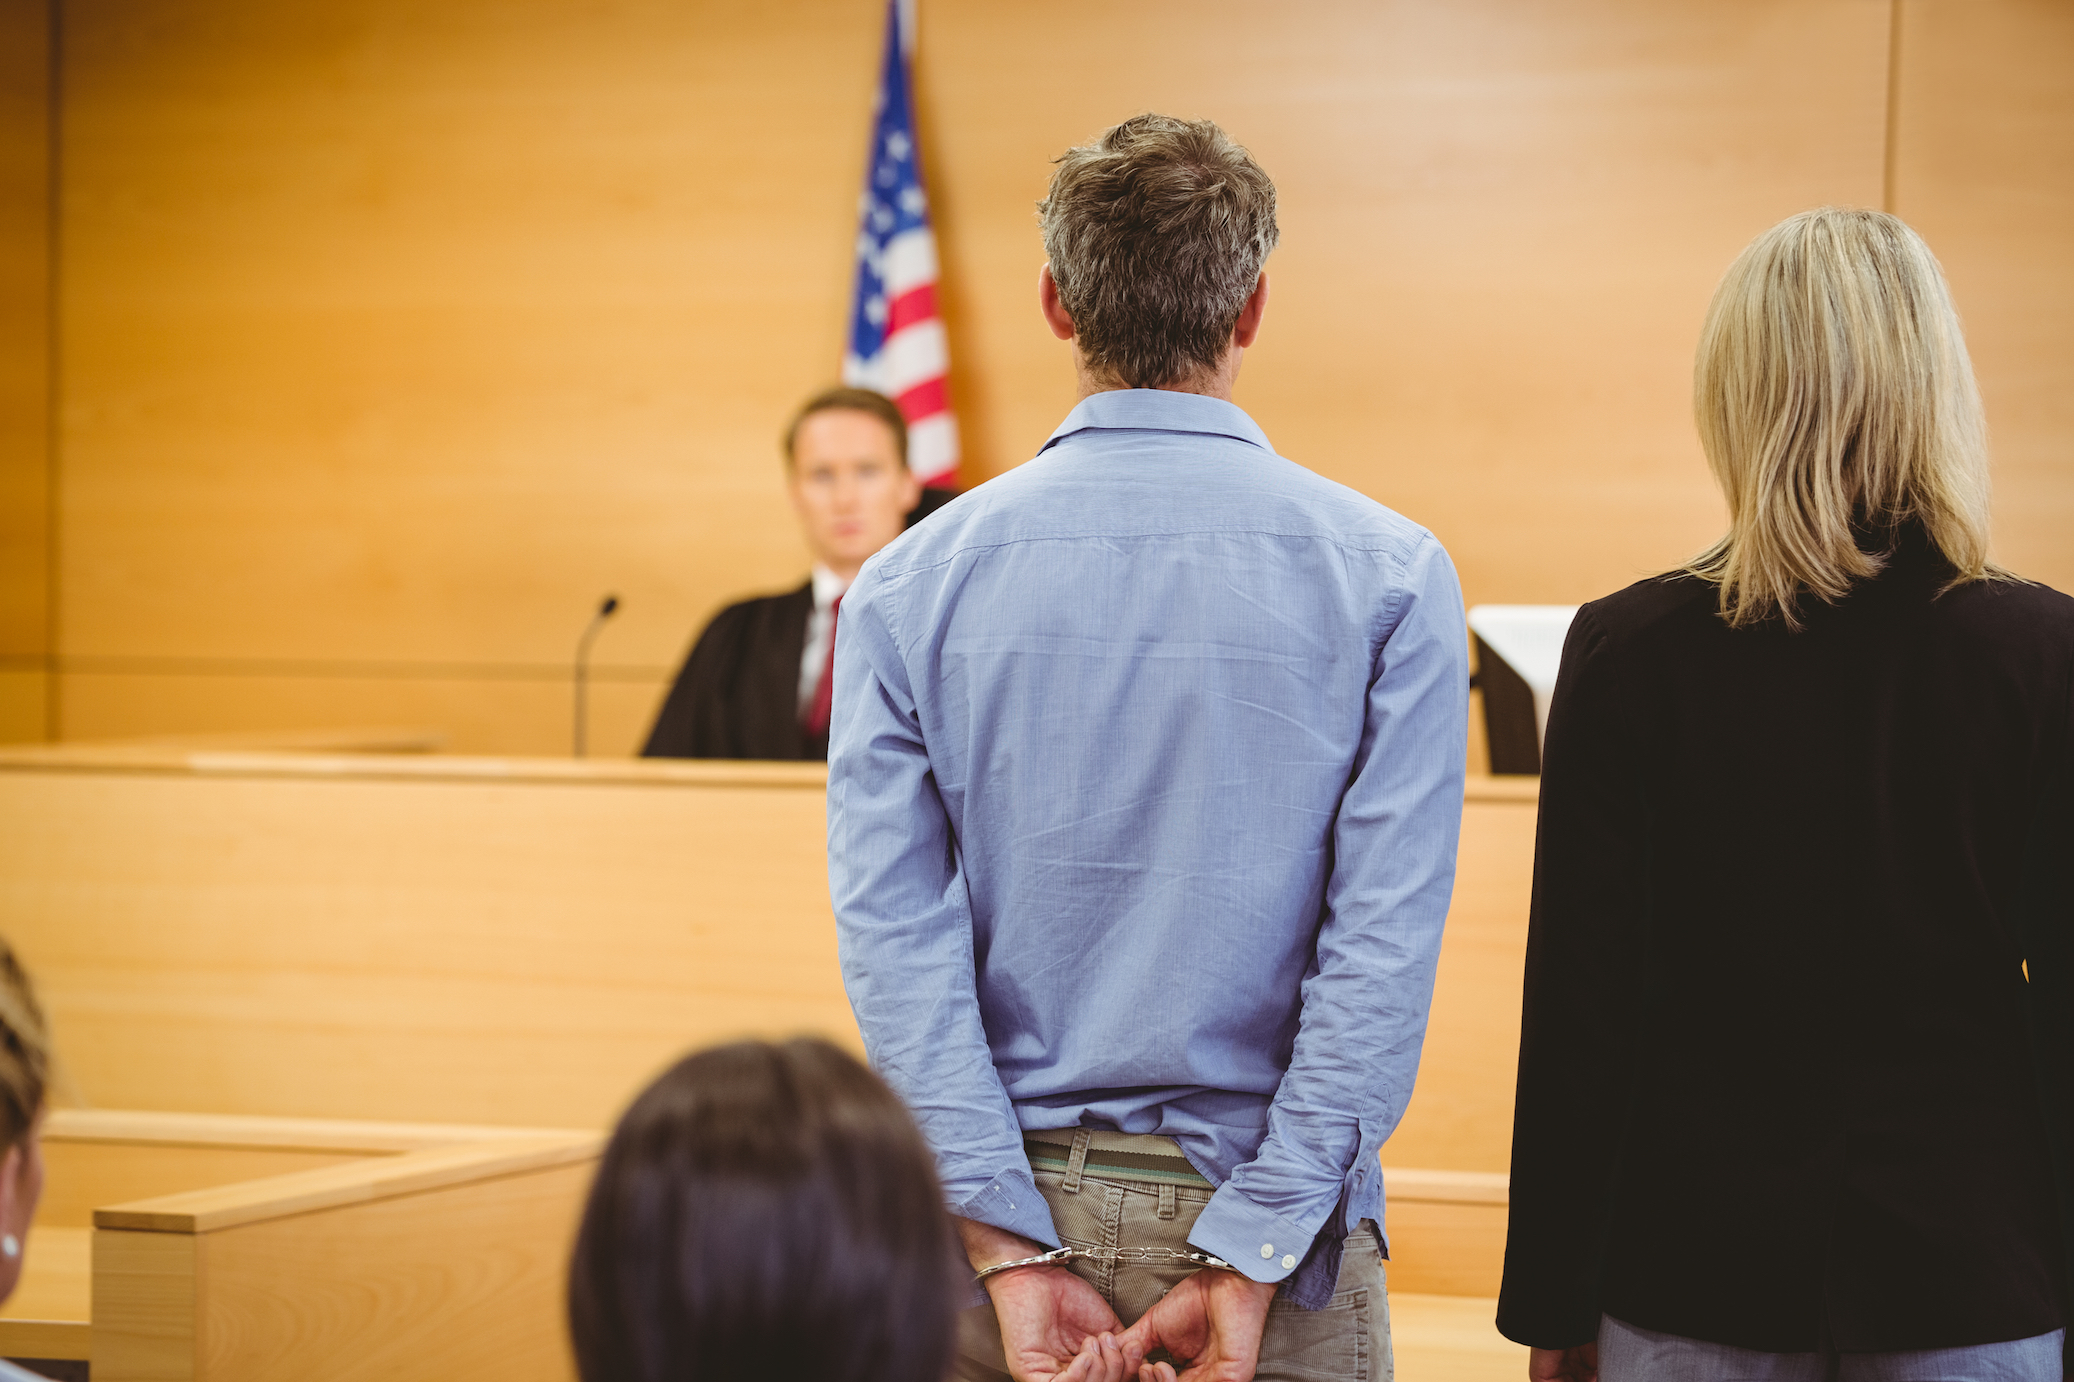 A new study has investigated the difference between male and female aggression among lawyers in the courtroom.